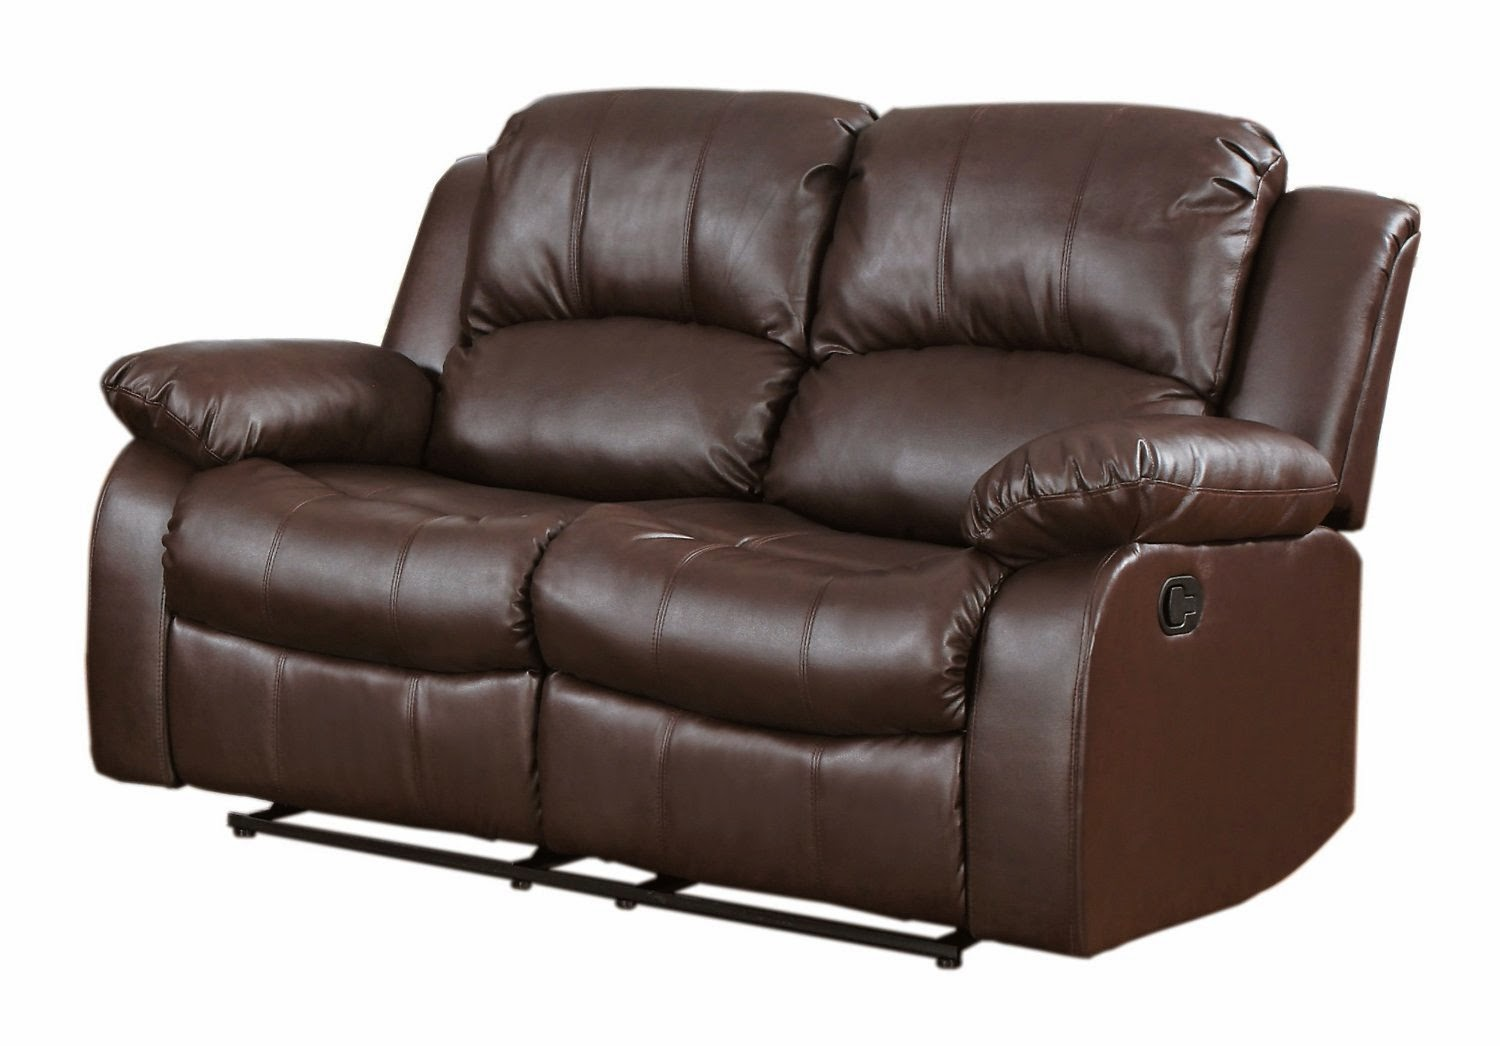 Reclining sofa loveseat and chair sets two seat reclining for Couch sofa set